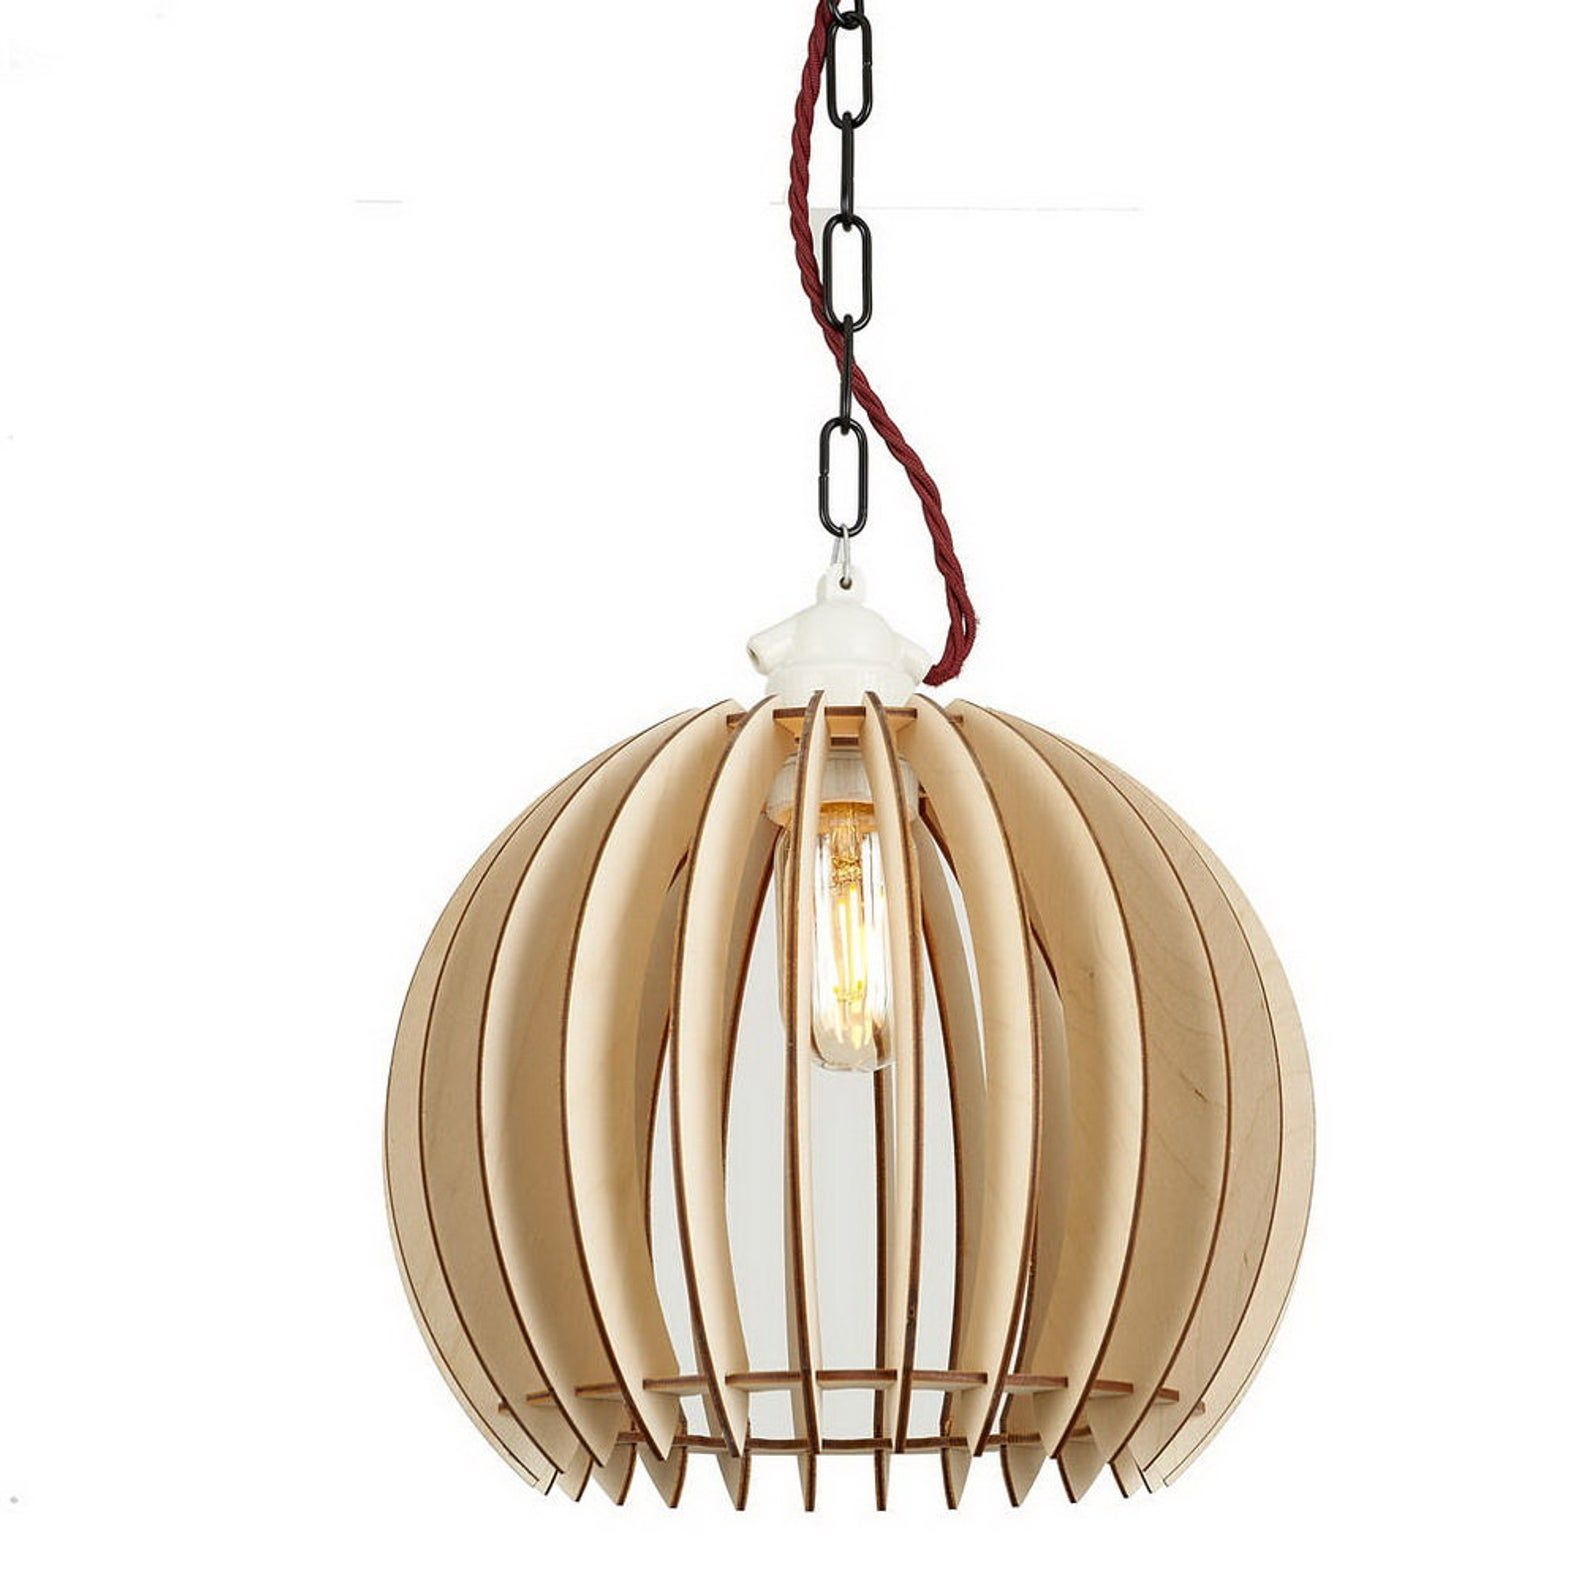 Voetbal Lamp Lasergesneden Cnc Fie Dxf Cdr Etsy Wooden Lampshade Etsy Sphere